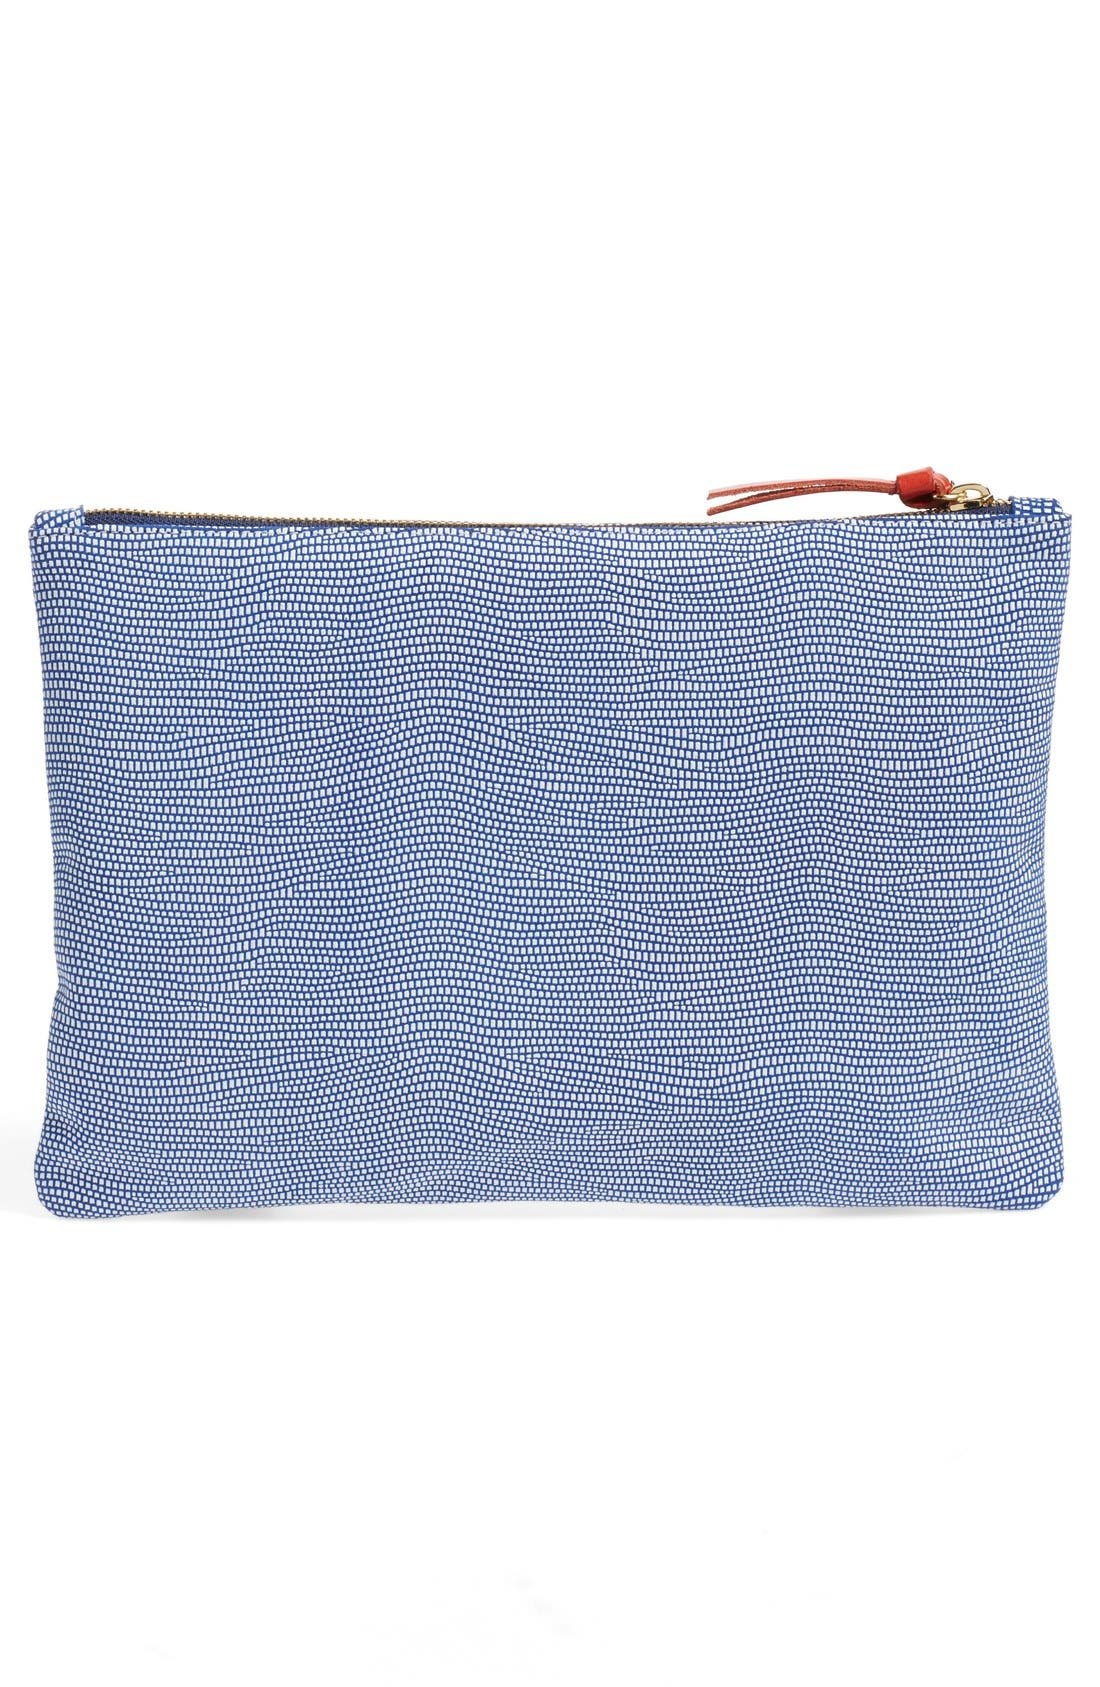 Alternate Image 3  - Clare V. Lizard Embossed Leather Zip Clutch